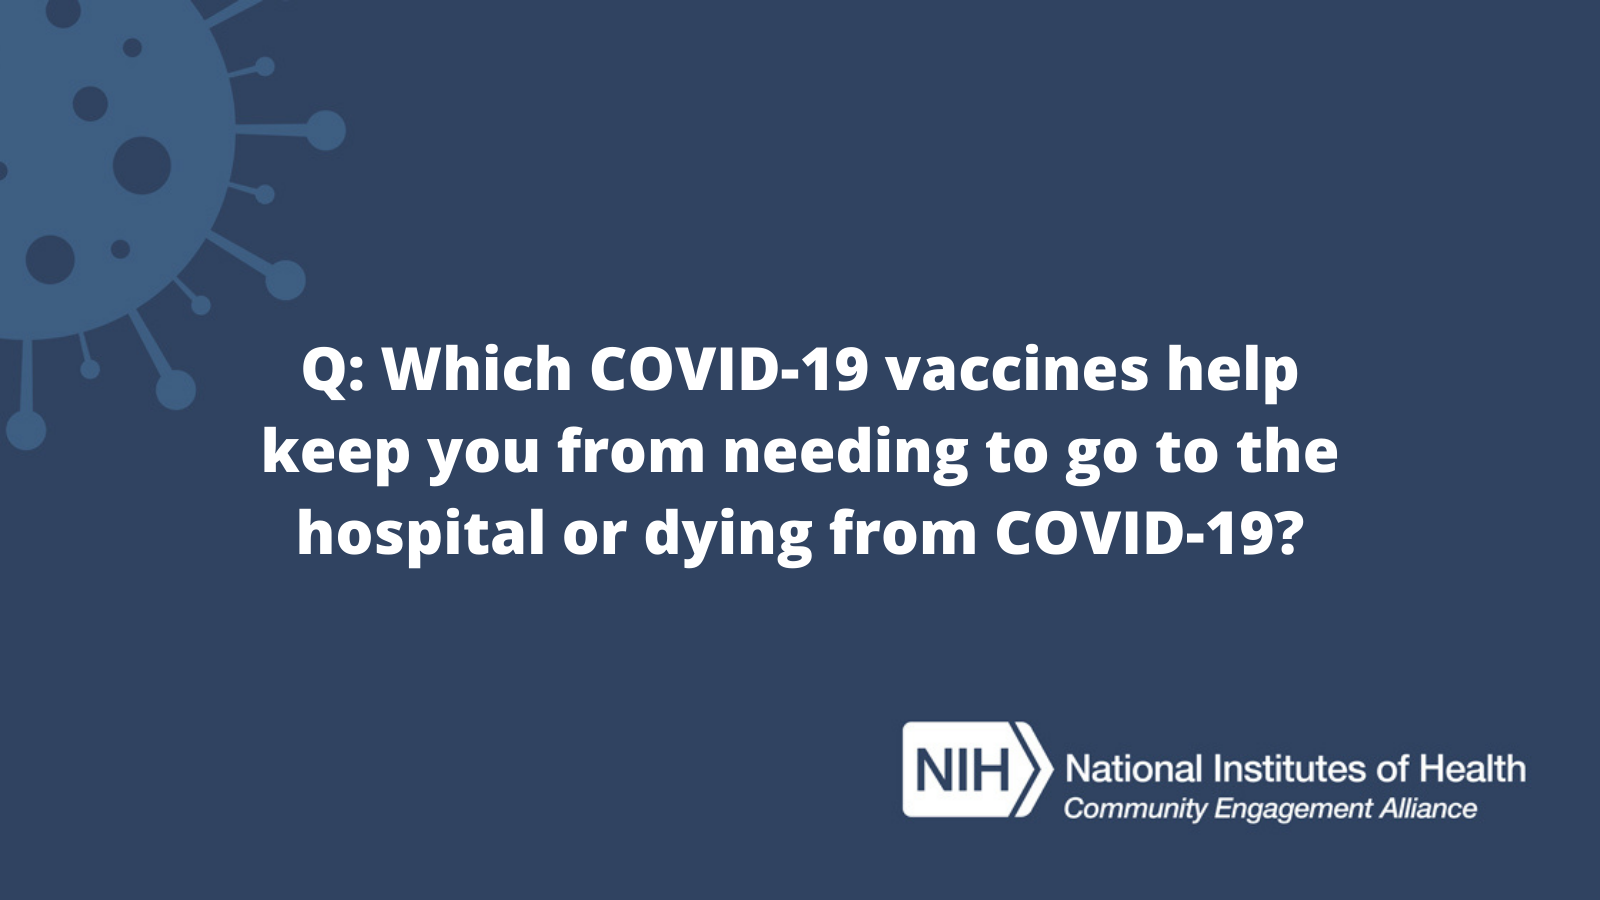 Q: Which COVID-19 vaccines help keep you from needing to go to the hospital or dying from COVID-19?